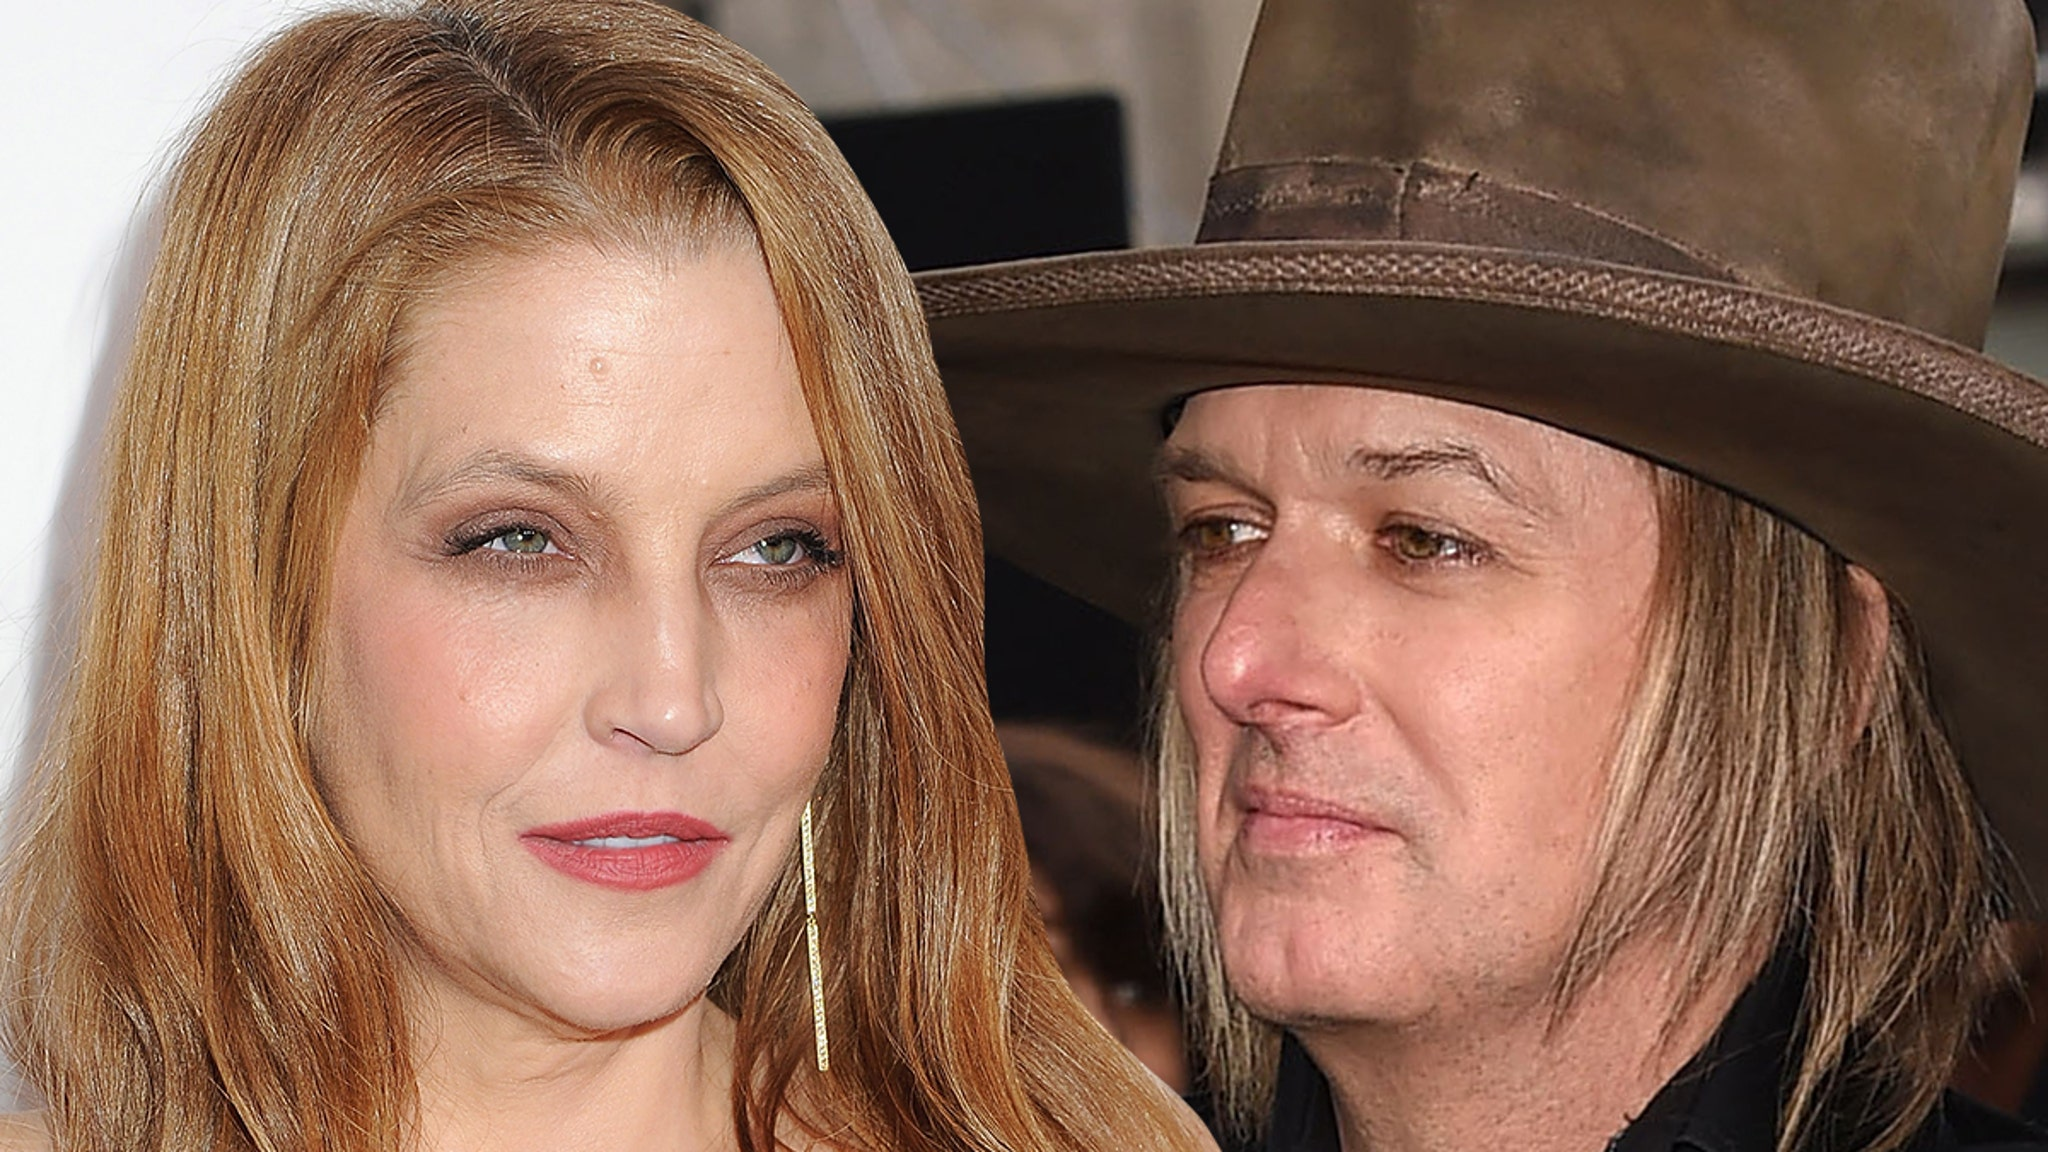 Lisa Marie Presley My Ex Won't Let Me Move On ... Make Me Single, Judge!!!